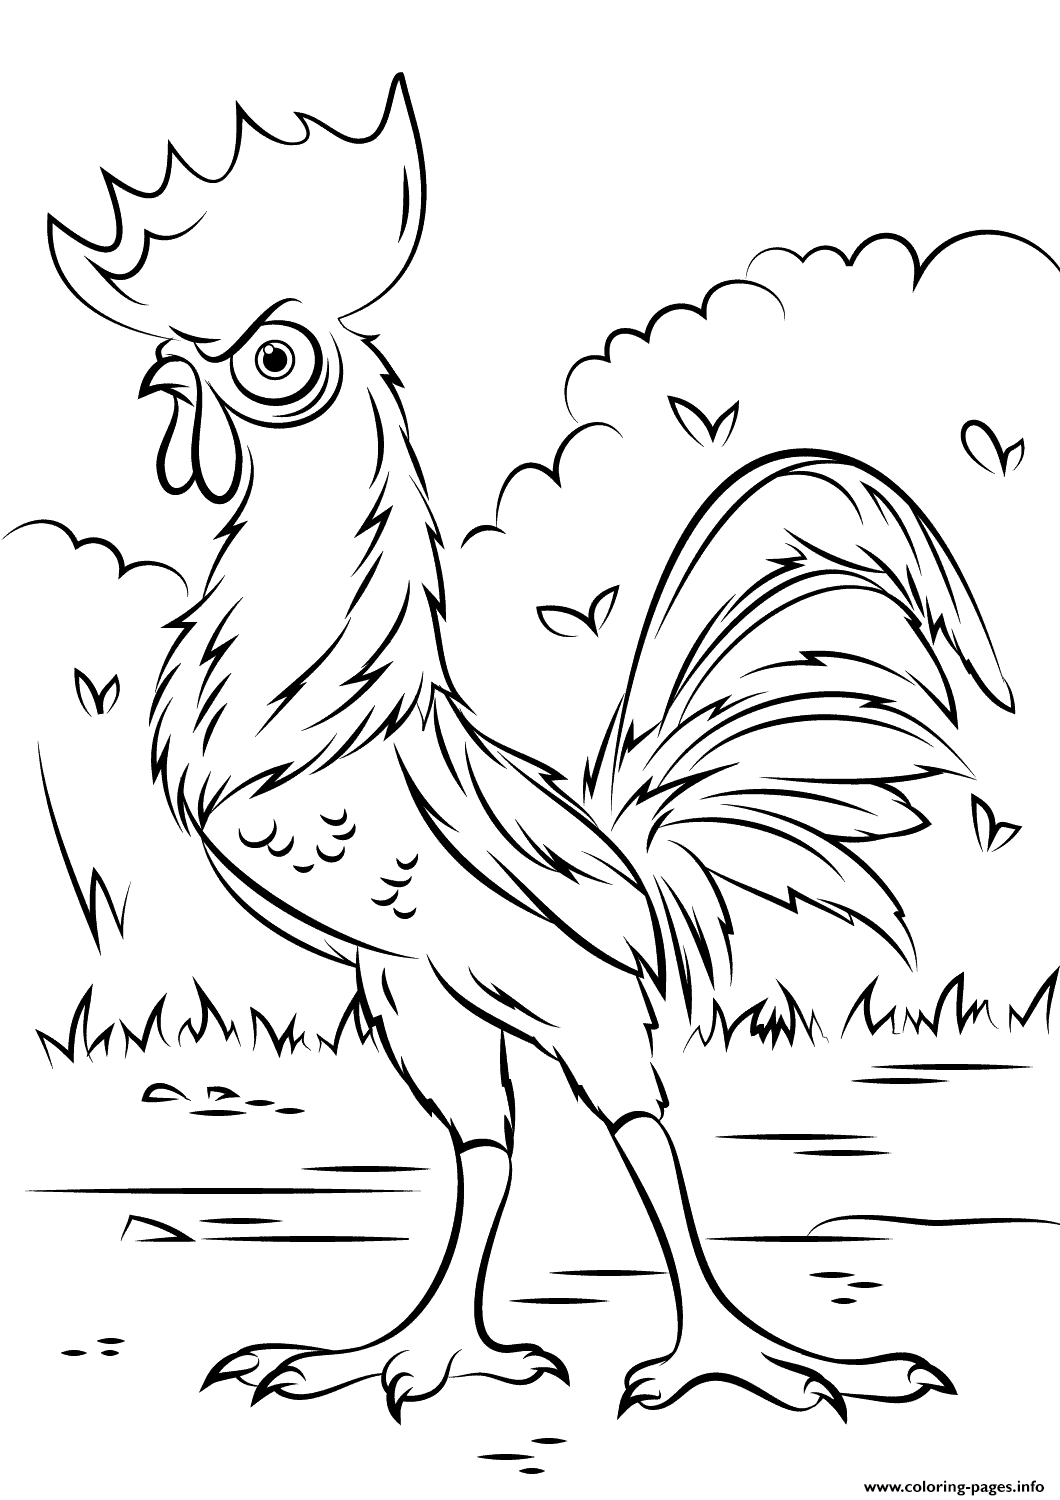 Heihei Rooster From Moana Disney  coloring pages